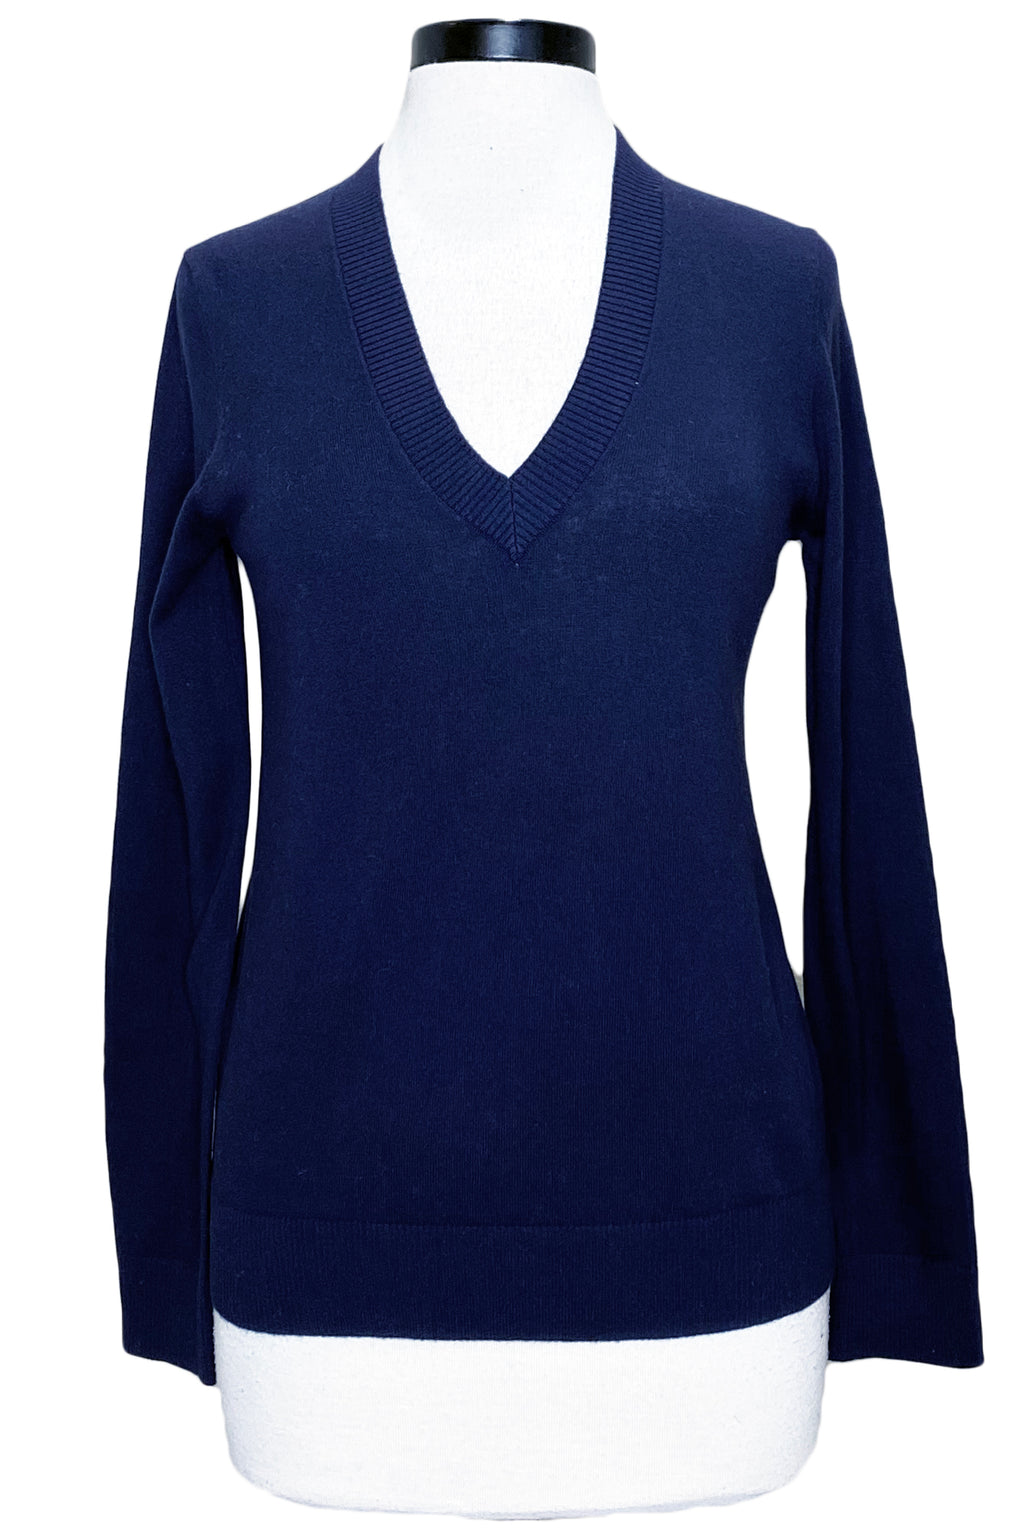 minnie rose long sleeve v-neck navy